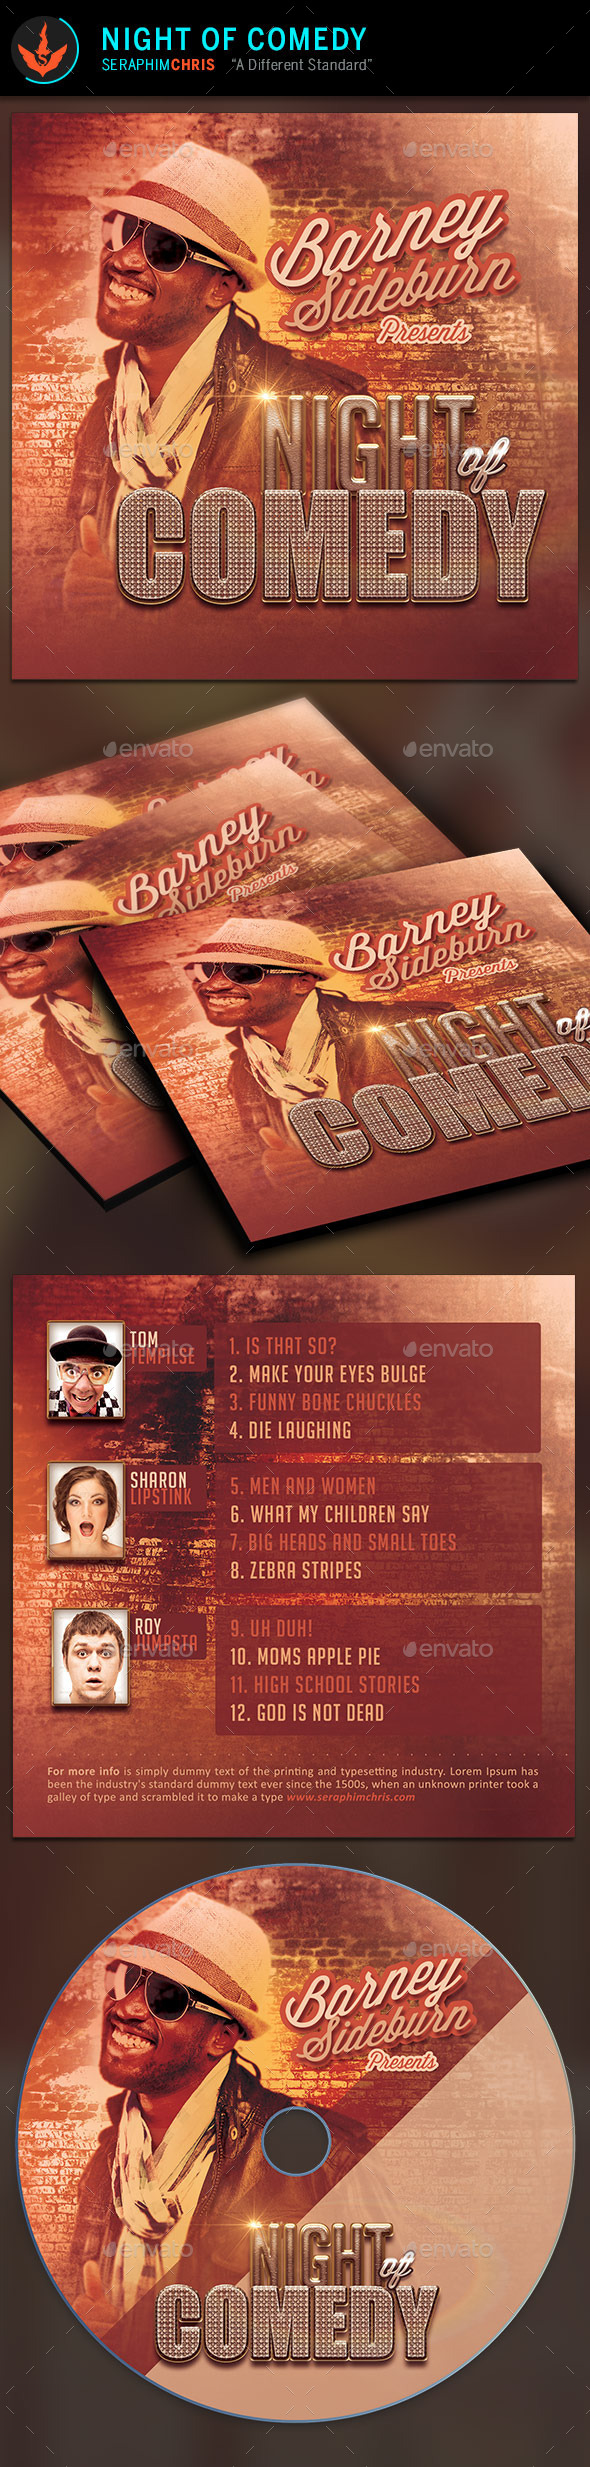 Night of Comedy: CD Artwork Template - CD & DVD Artwork Print Templates